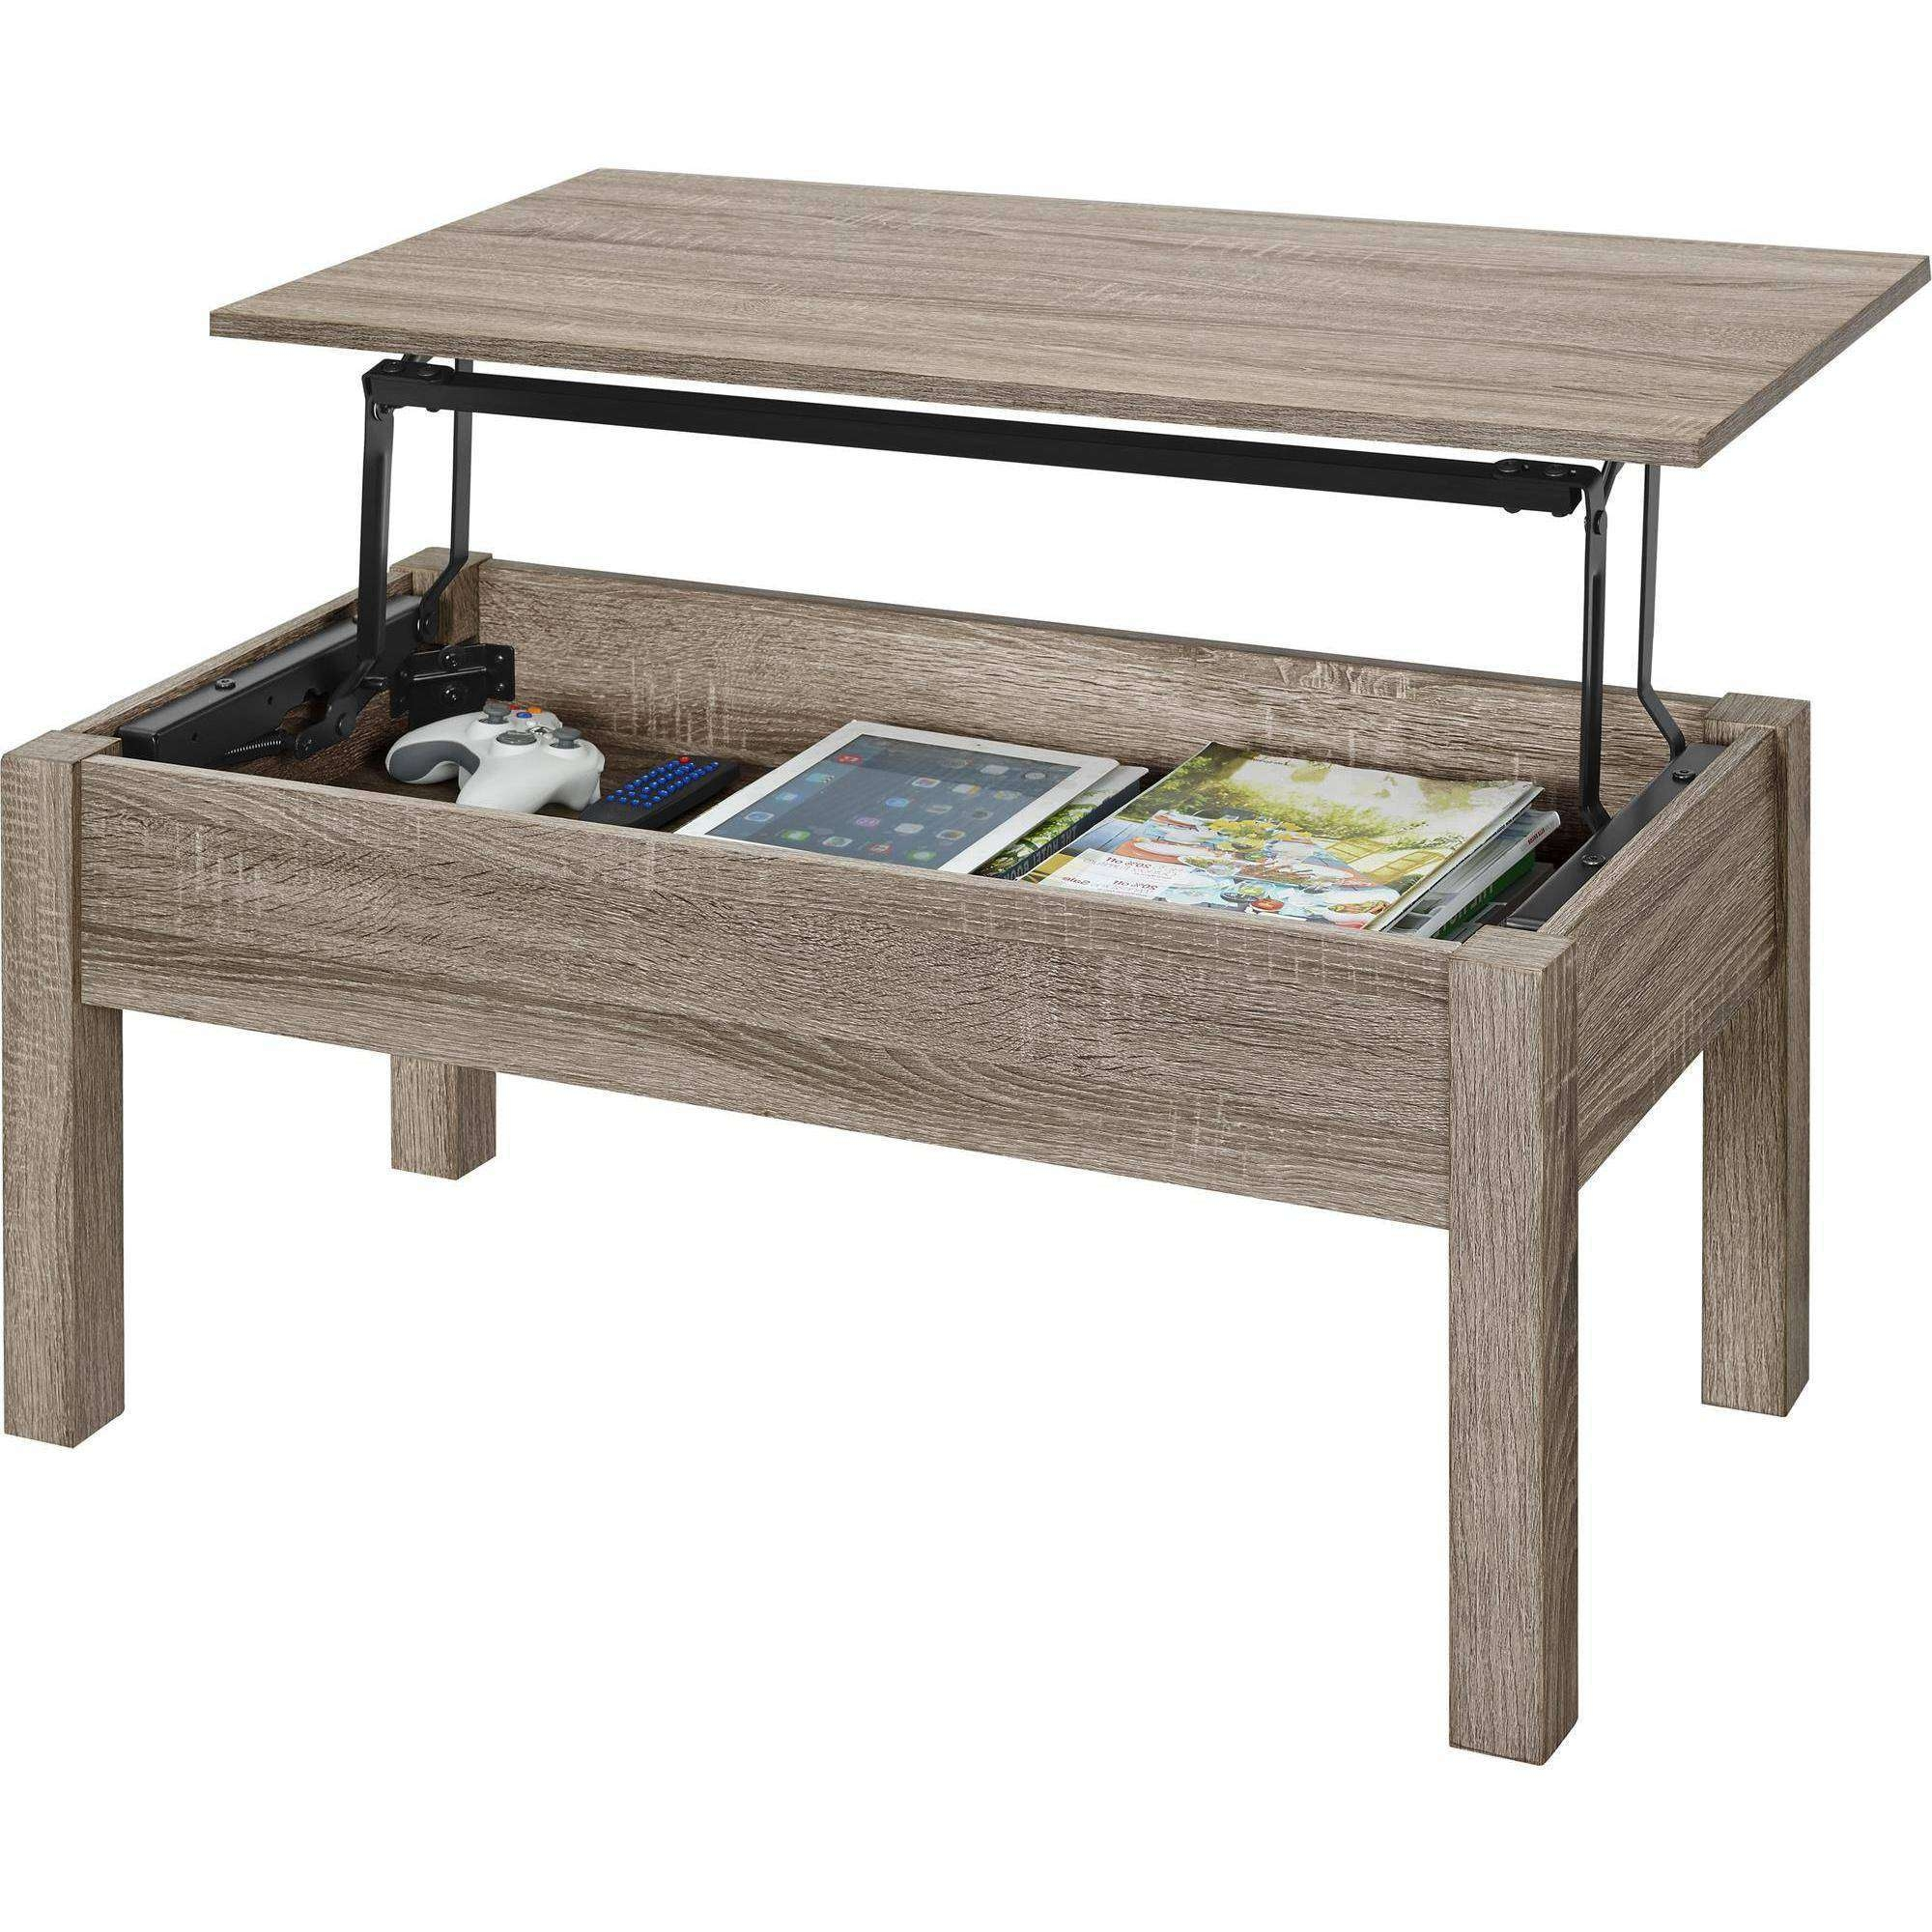 Mainstays Lift Top Coffee Table, Multiple Colors – Walmart For Most Recent Raise Up Coffee Tables (View 7 of 20)